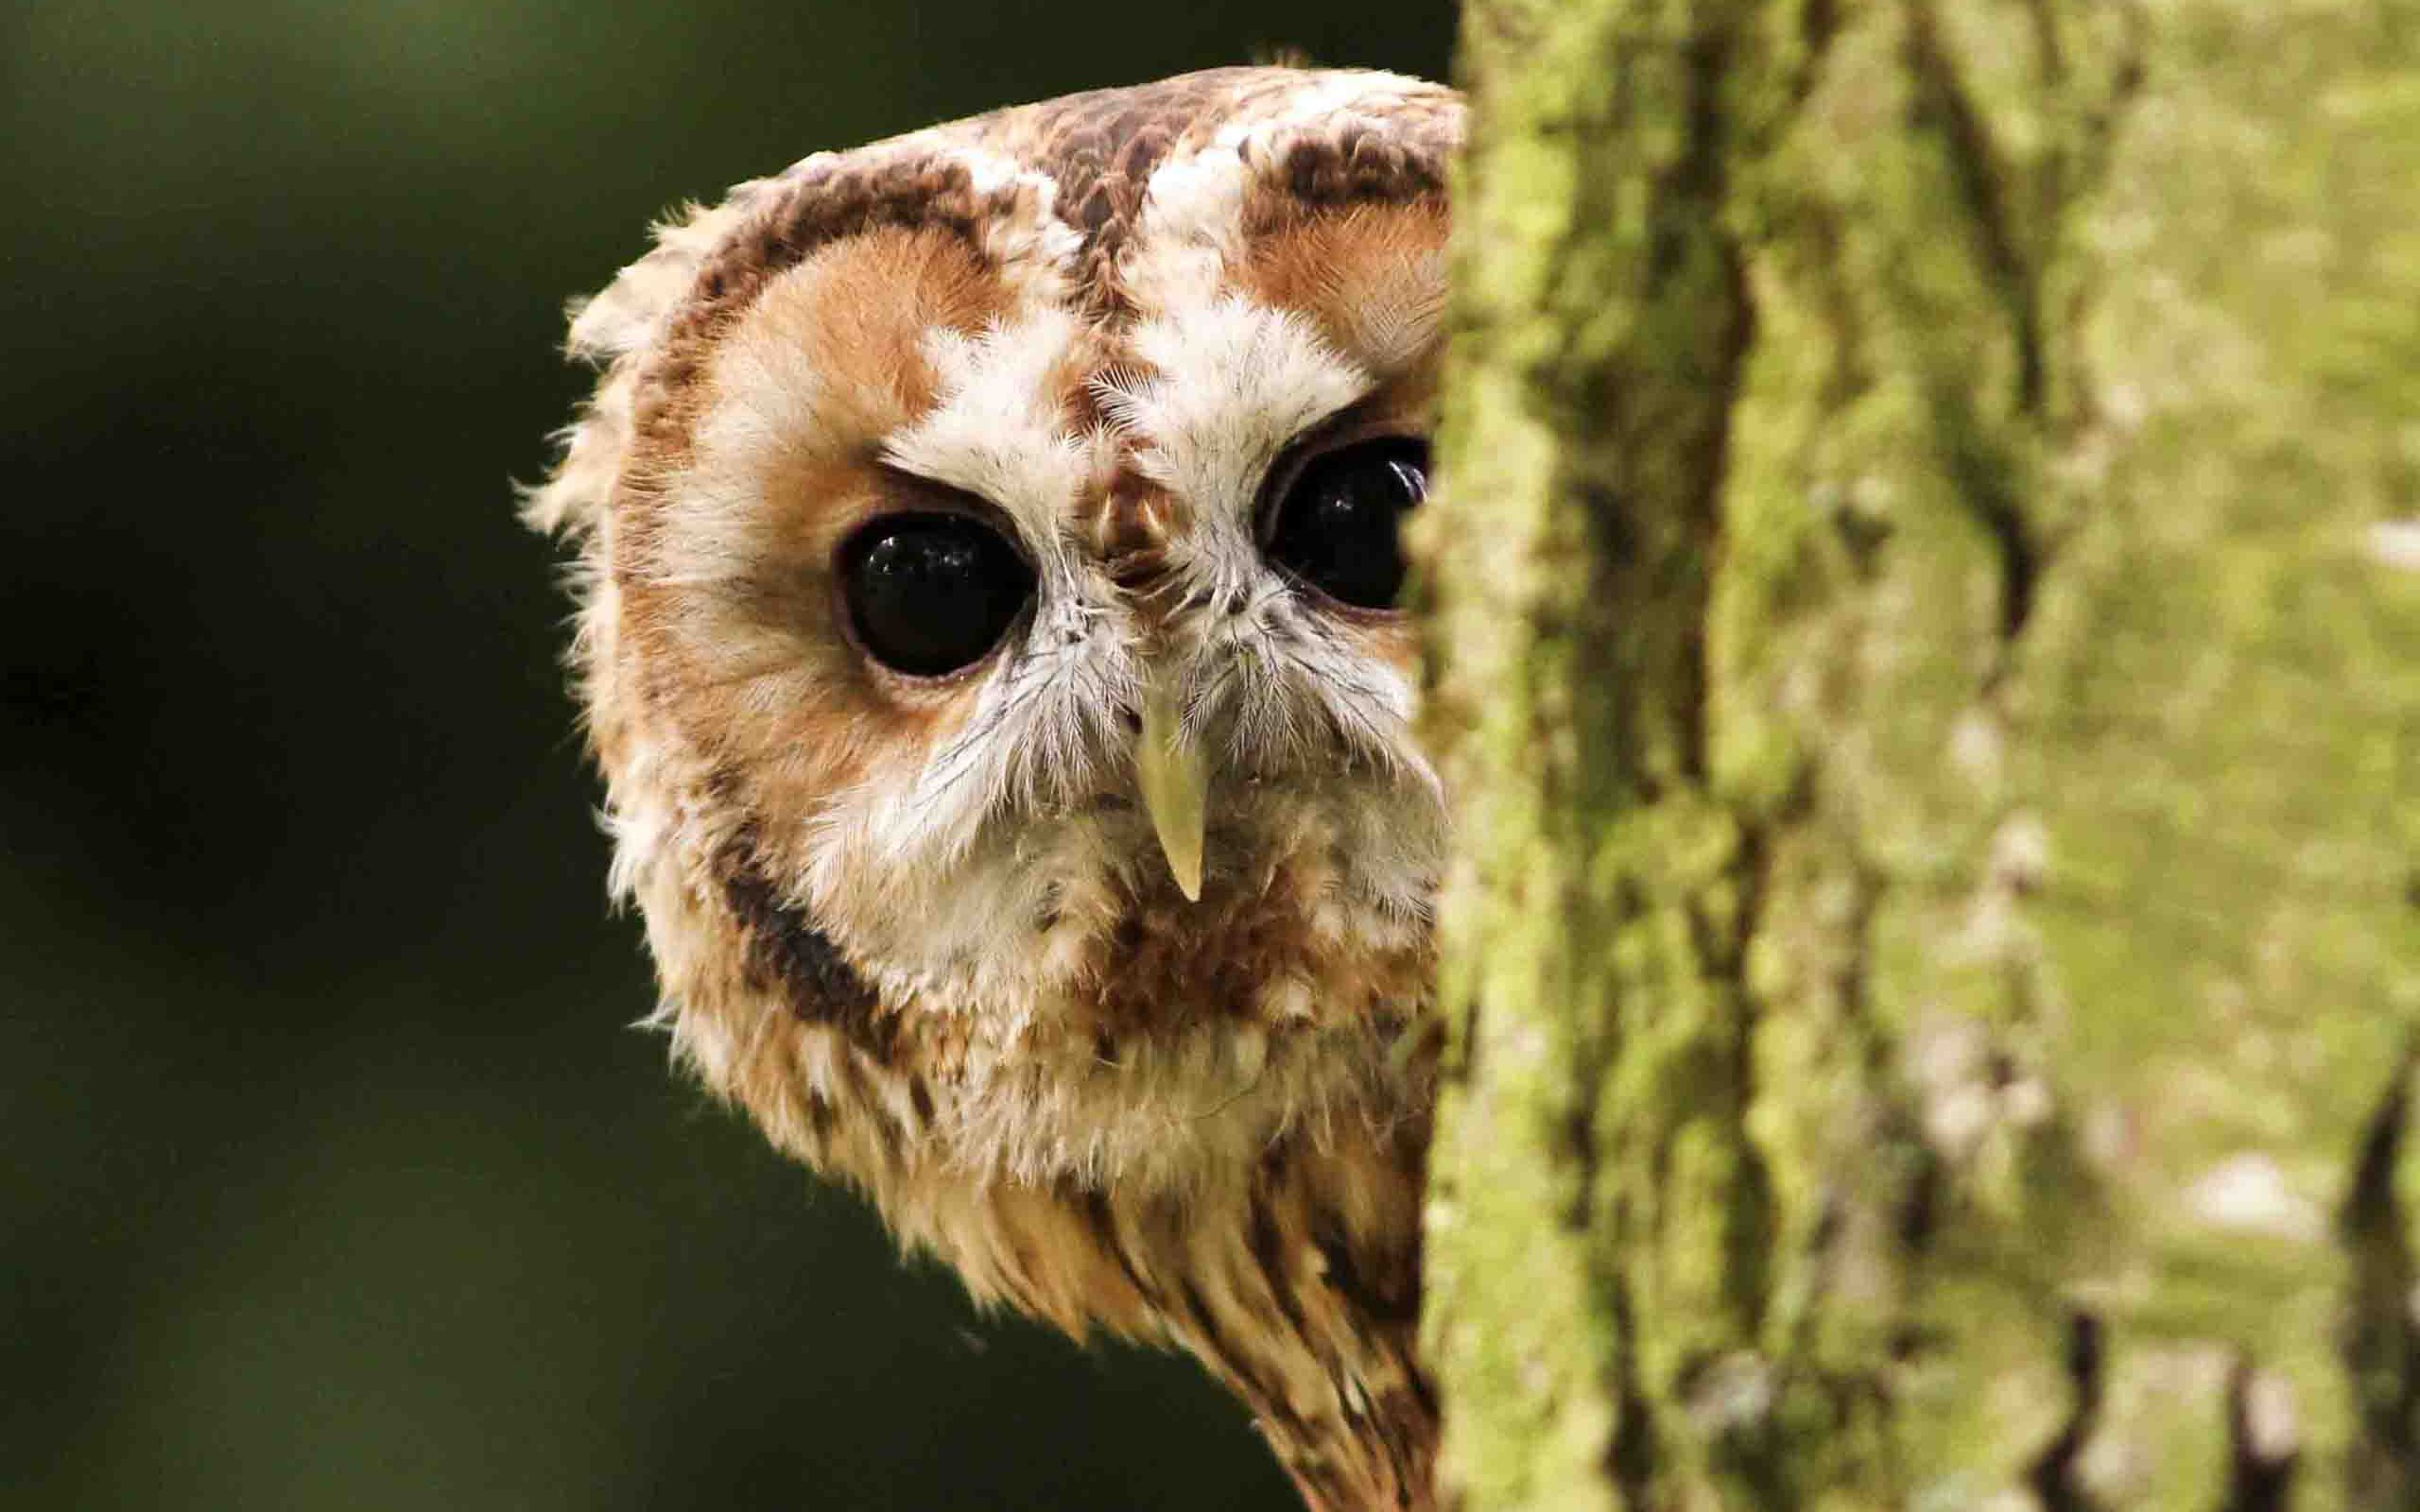 Cute Wallpapers For Facebook Cover Photo Barred Owl Hd Wallpaper Background Image 2560x1600